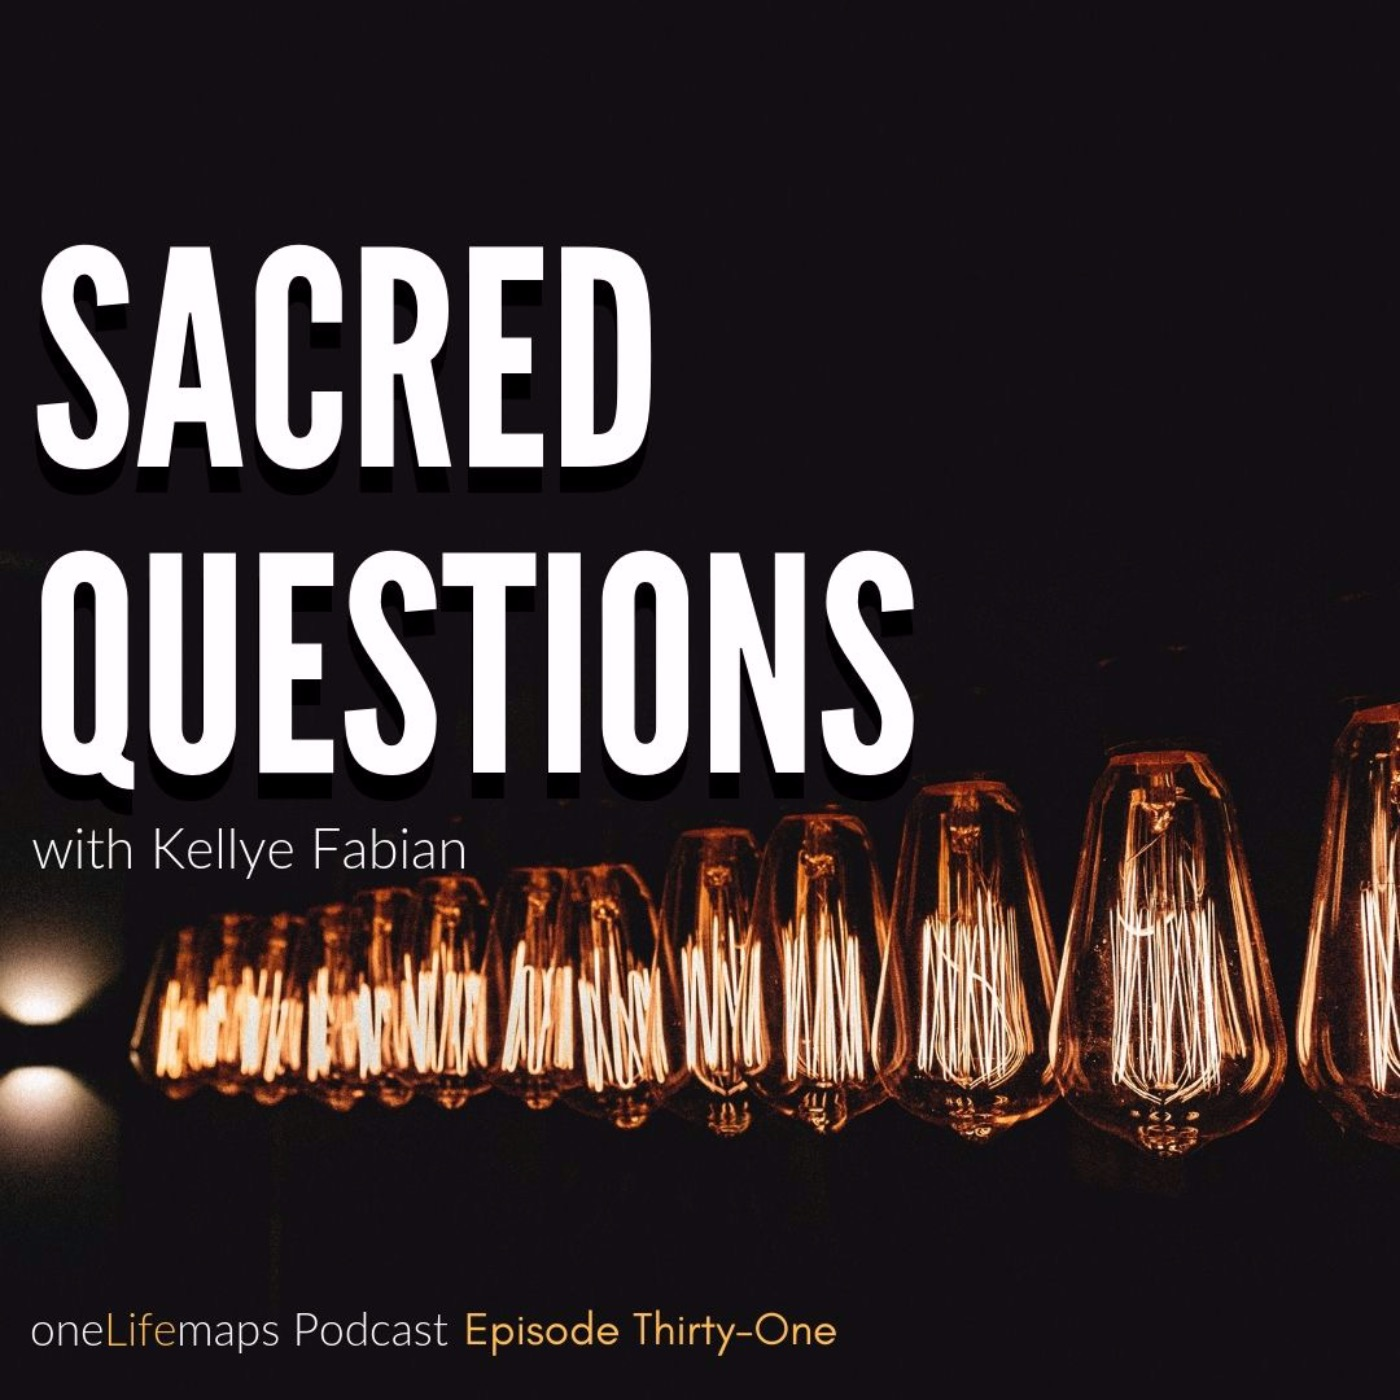 Sacred Questions with Kellye Fabian